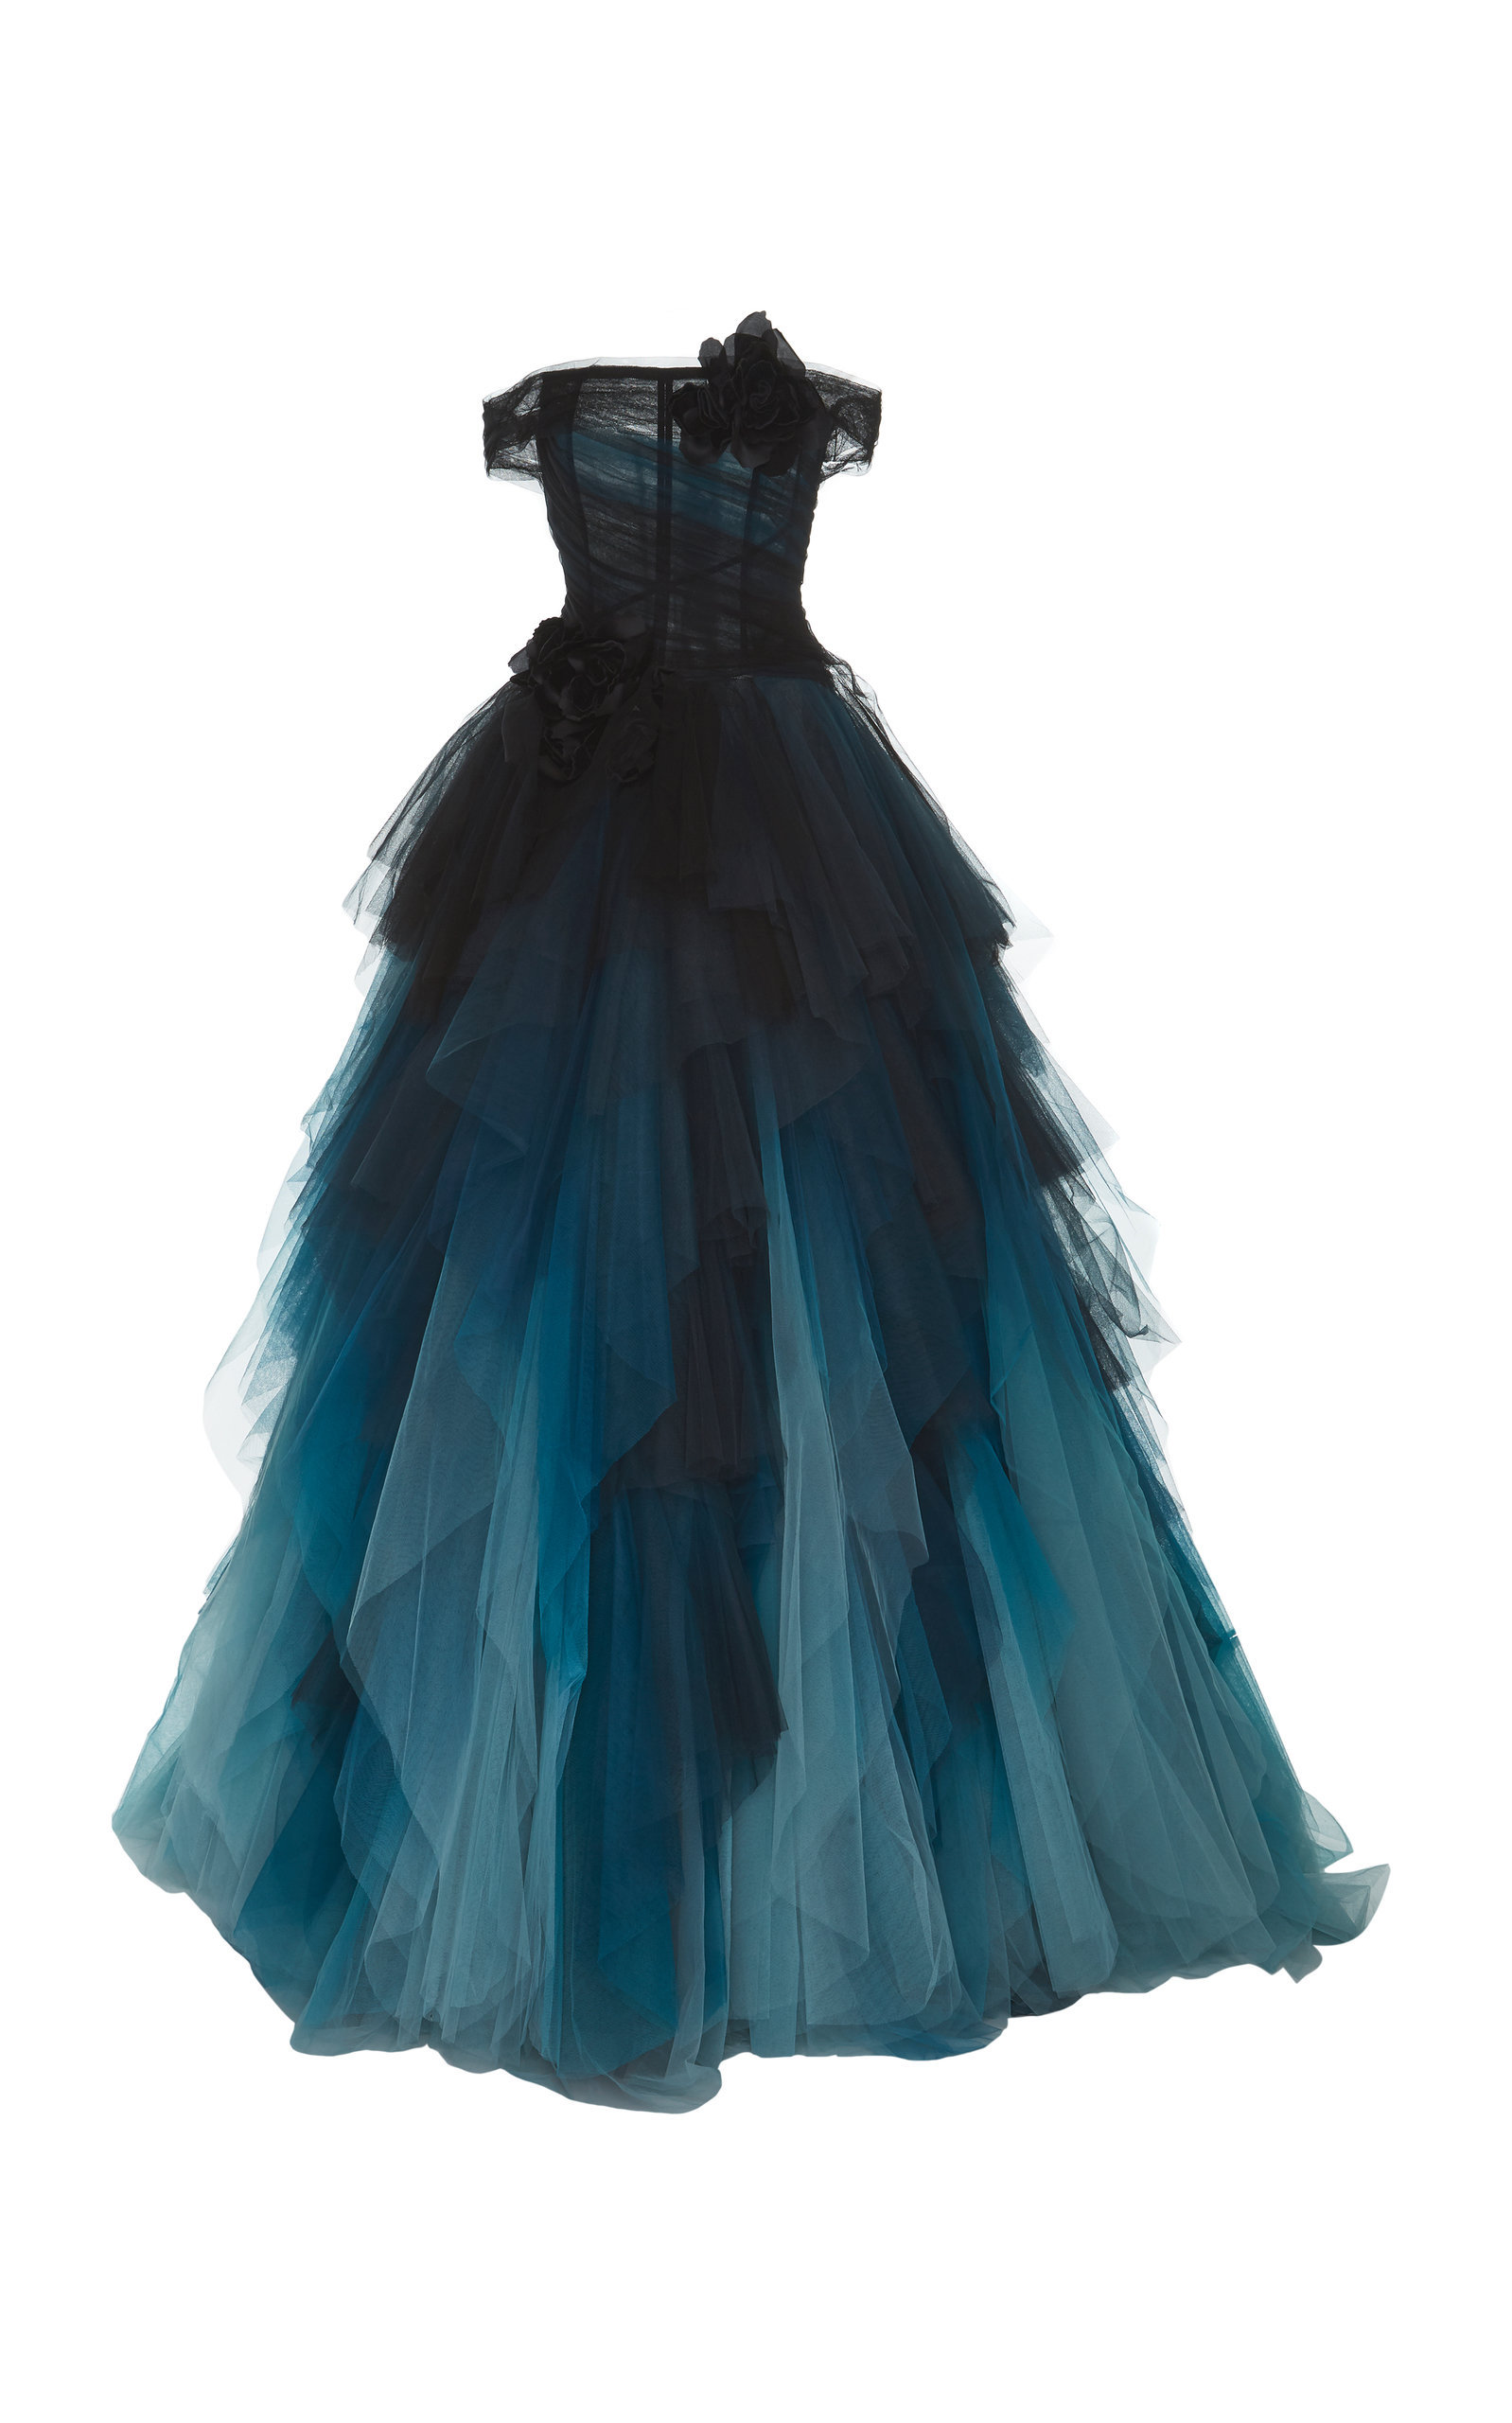 Marchesa - Off The Shoulder Ball Gown, $12,995